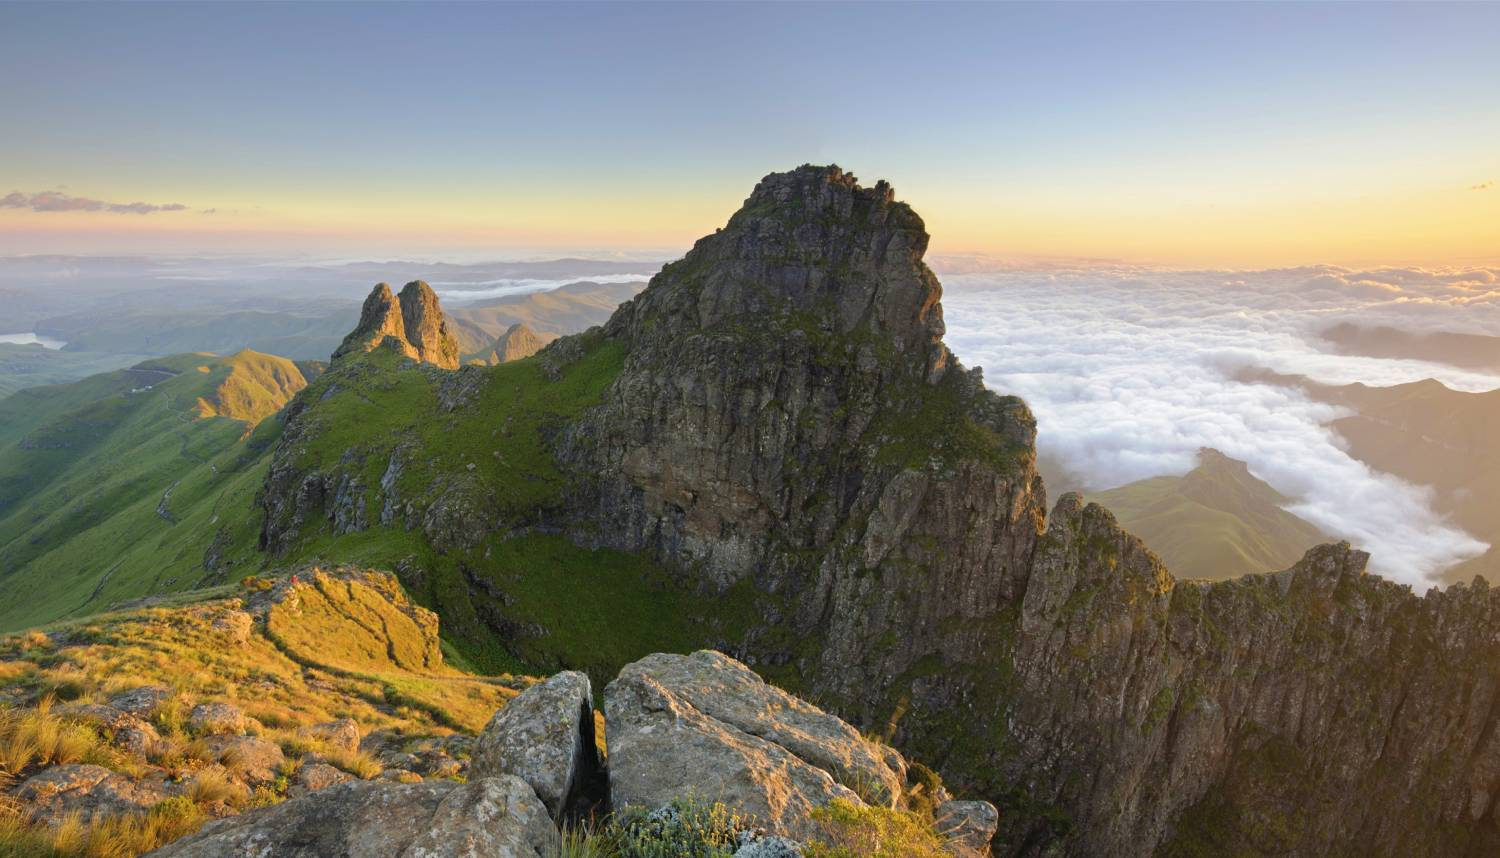 KwaZulu-Natal - The Best Places To Visit In South Africa